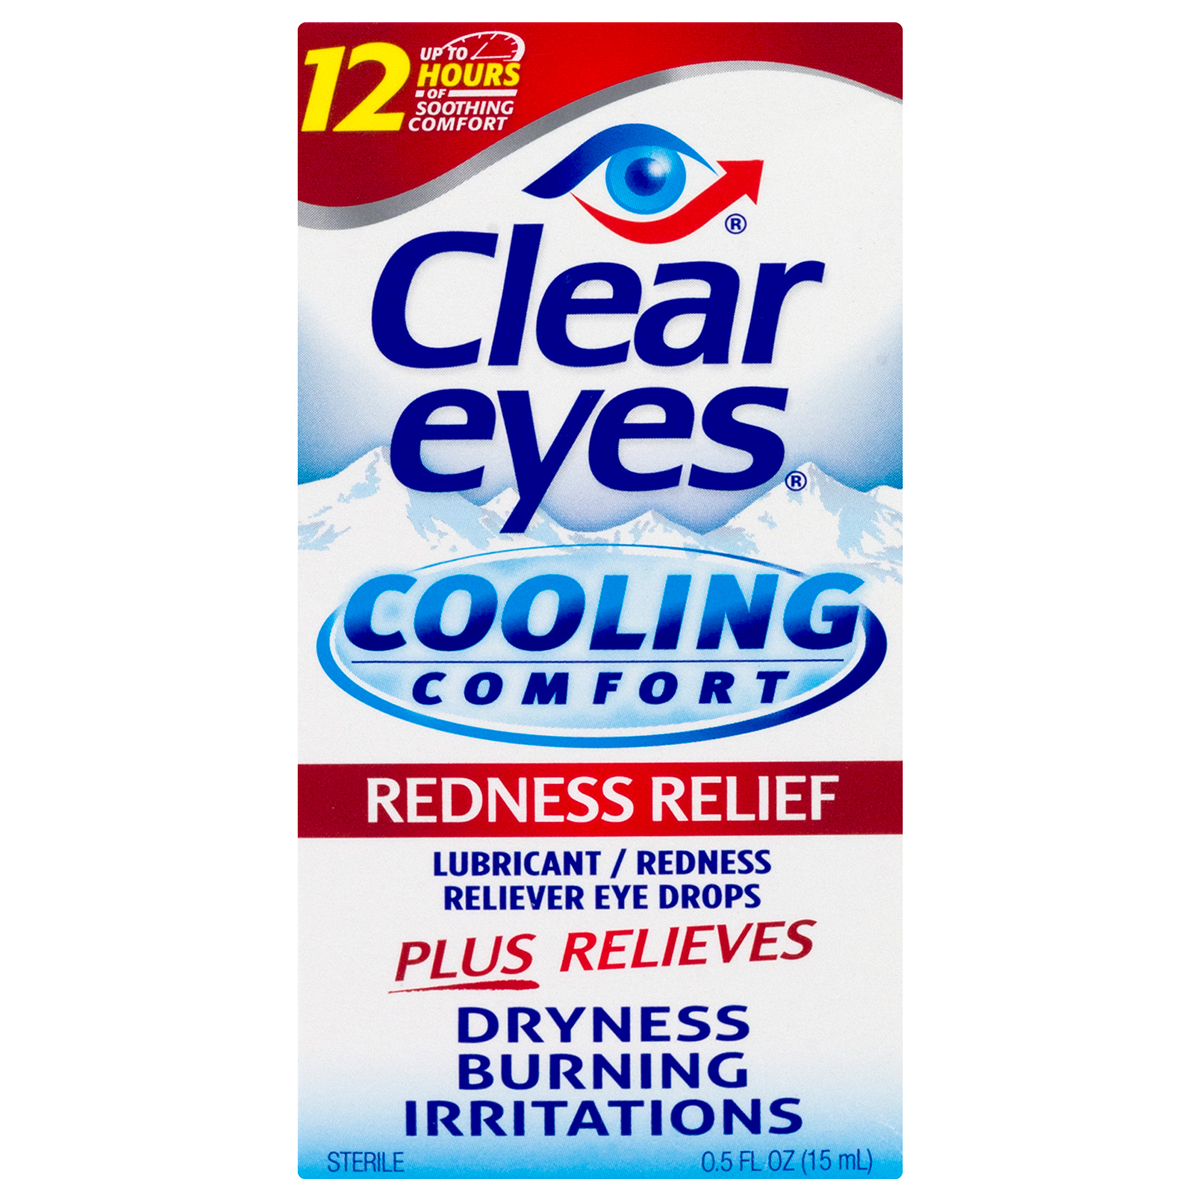 Clear Eyes Cooling Comfort Redness Relief Eye Drops, 0.5 FL OZ